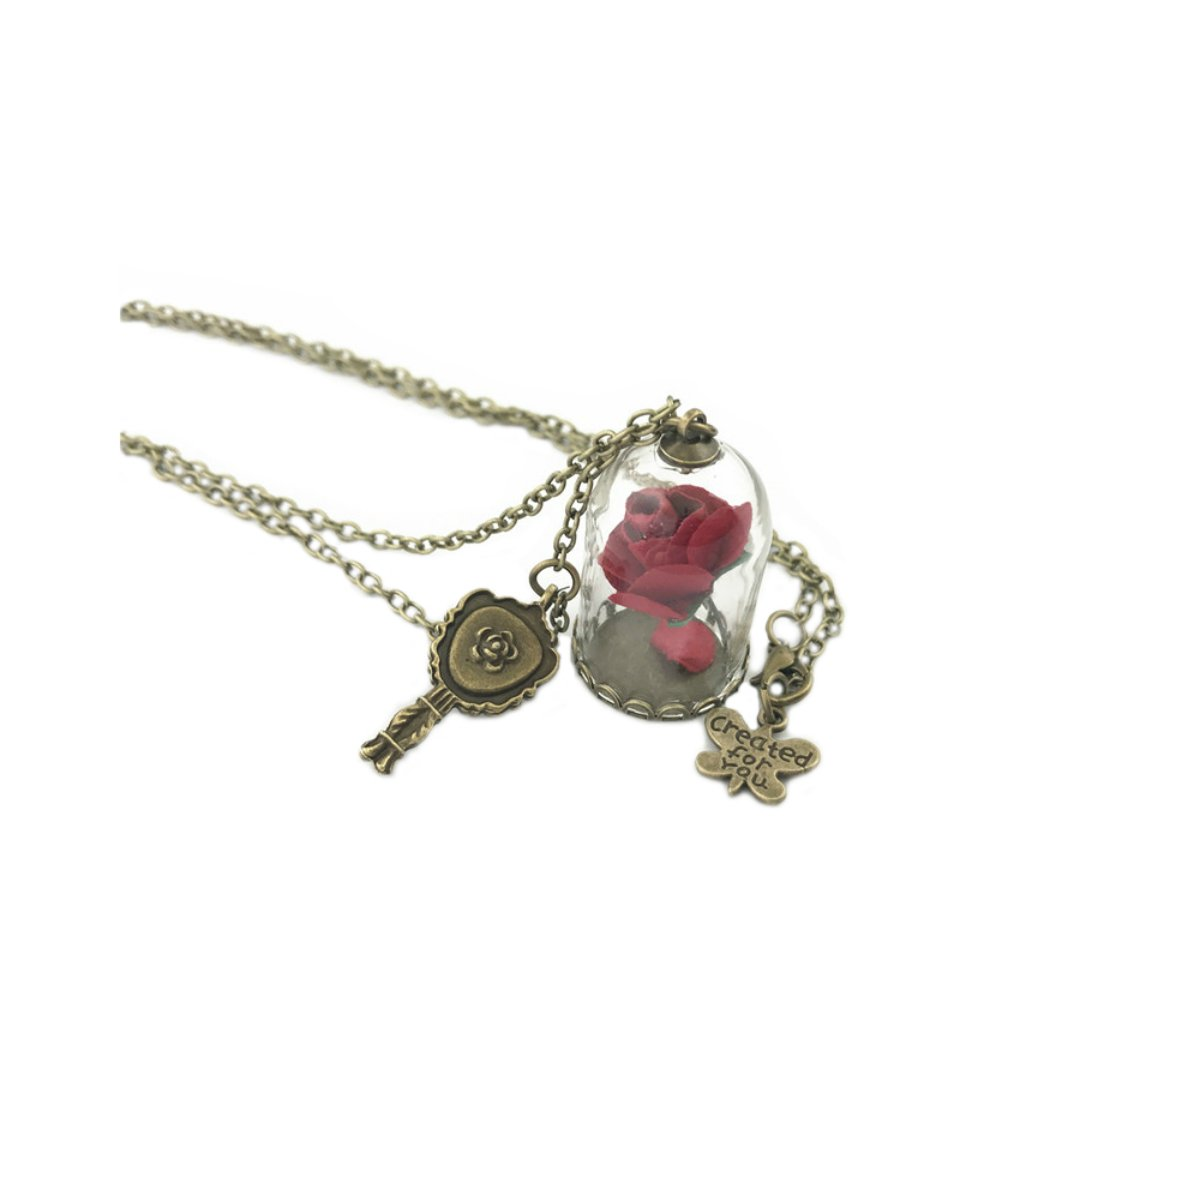 Disney's Beauty and the Beast Necklace Pendant - Rose Charm - Classic Movies Cosplay by Athena Brand